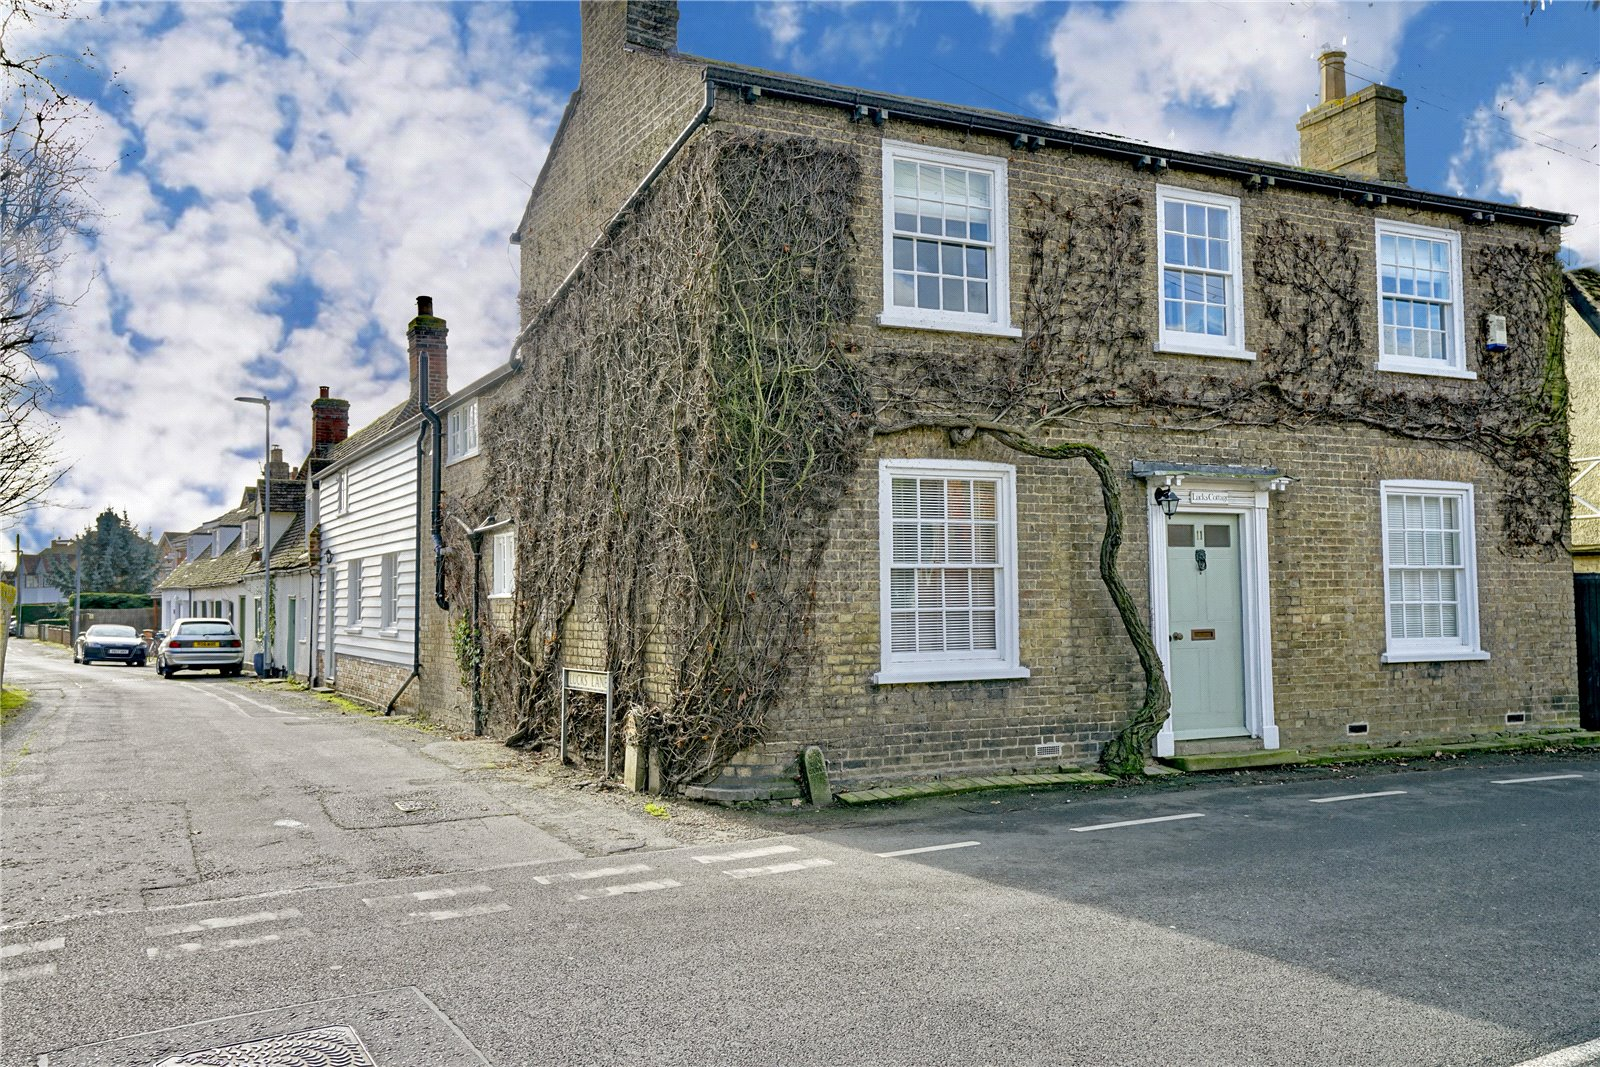 4 bed house for sale in Buckden 15